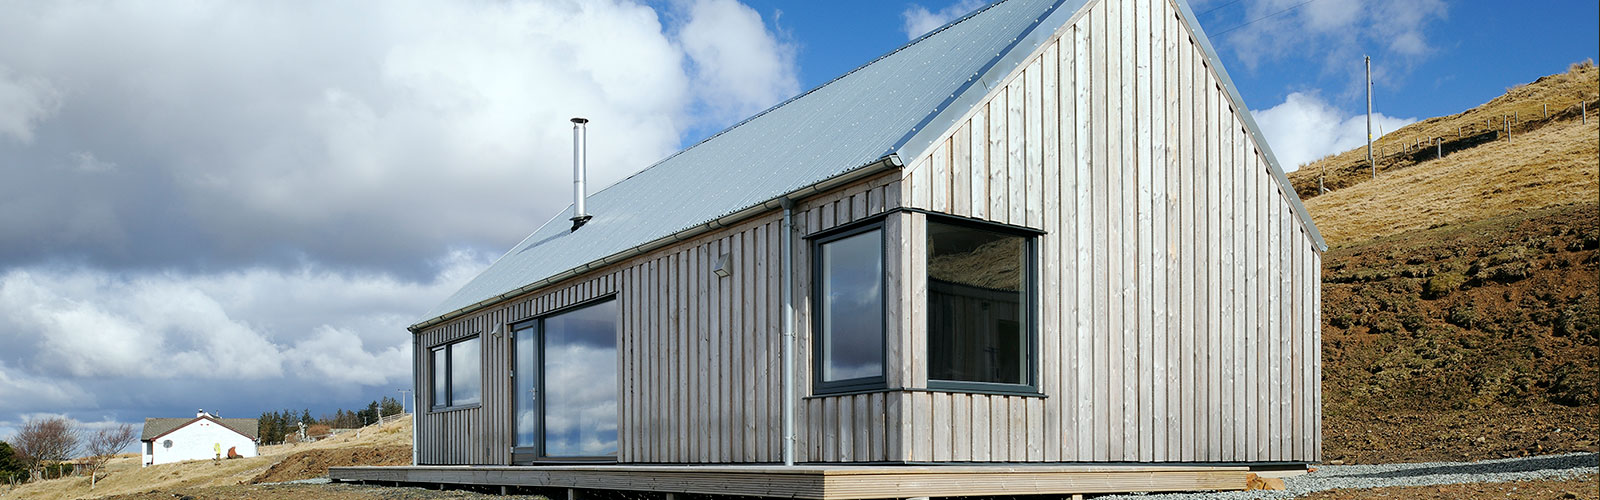 Highland based Joinery Contractors